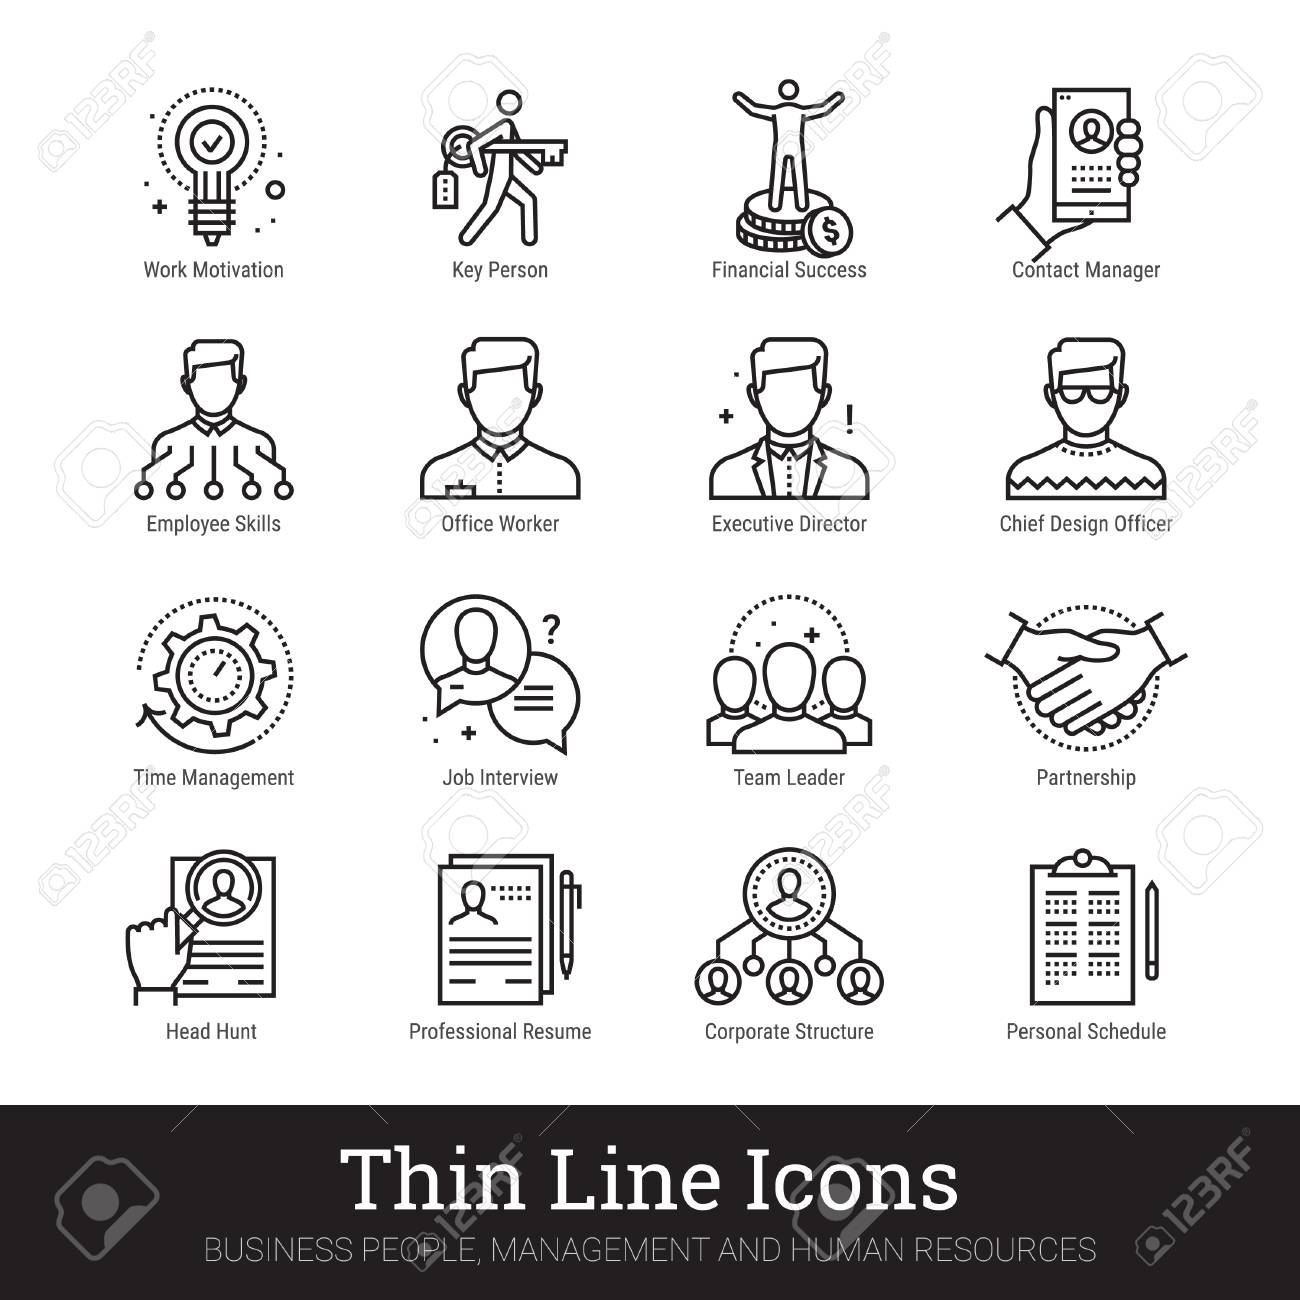 Business people, human resources thin line icons. Modern linear logo concept for web, mobile application. Management, employee organization structure, team work symbols. Outline vector collection. - 124951311